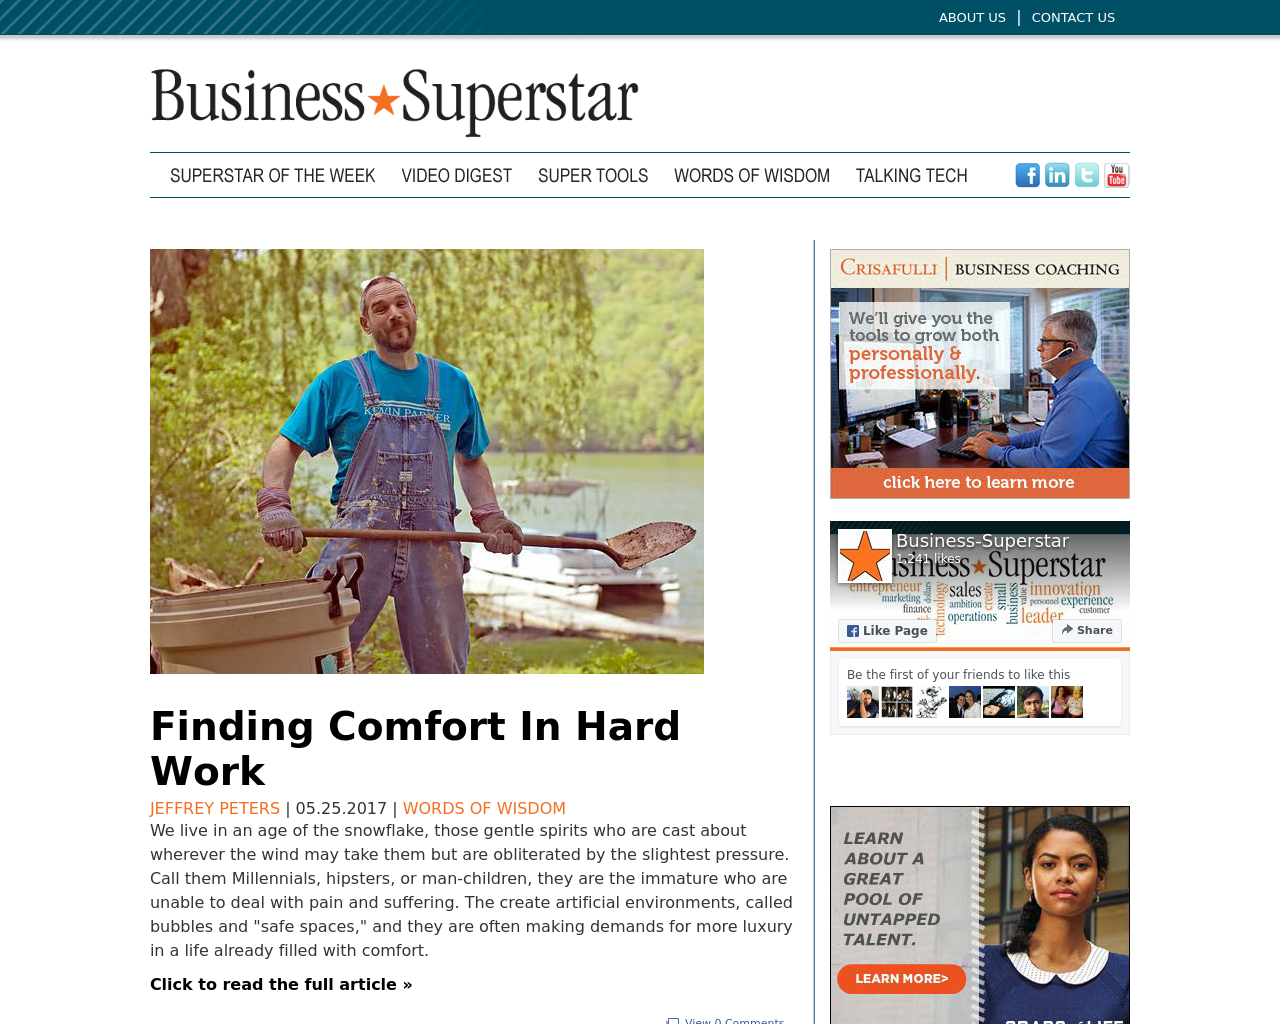 Business-Superstar-Advertising-Reviews-Pricing